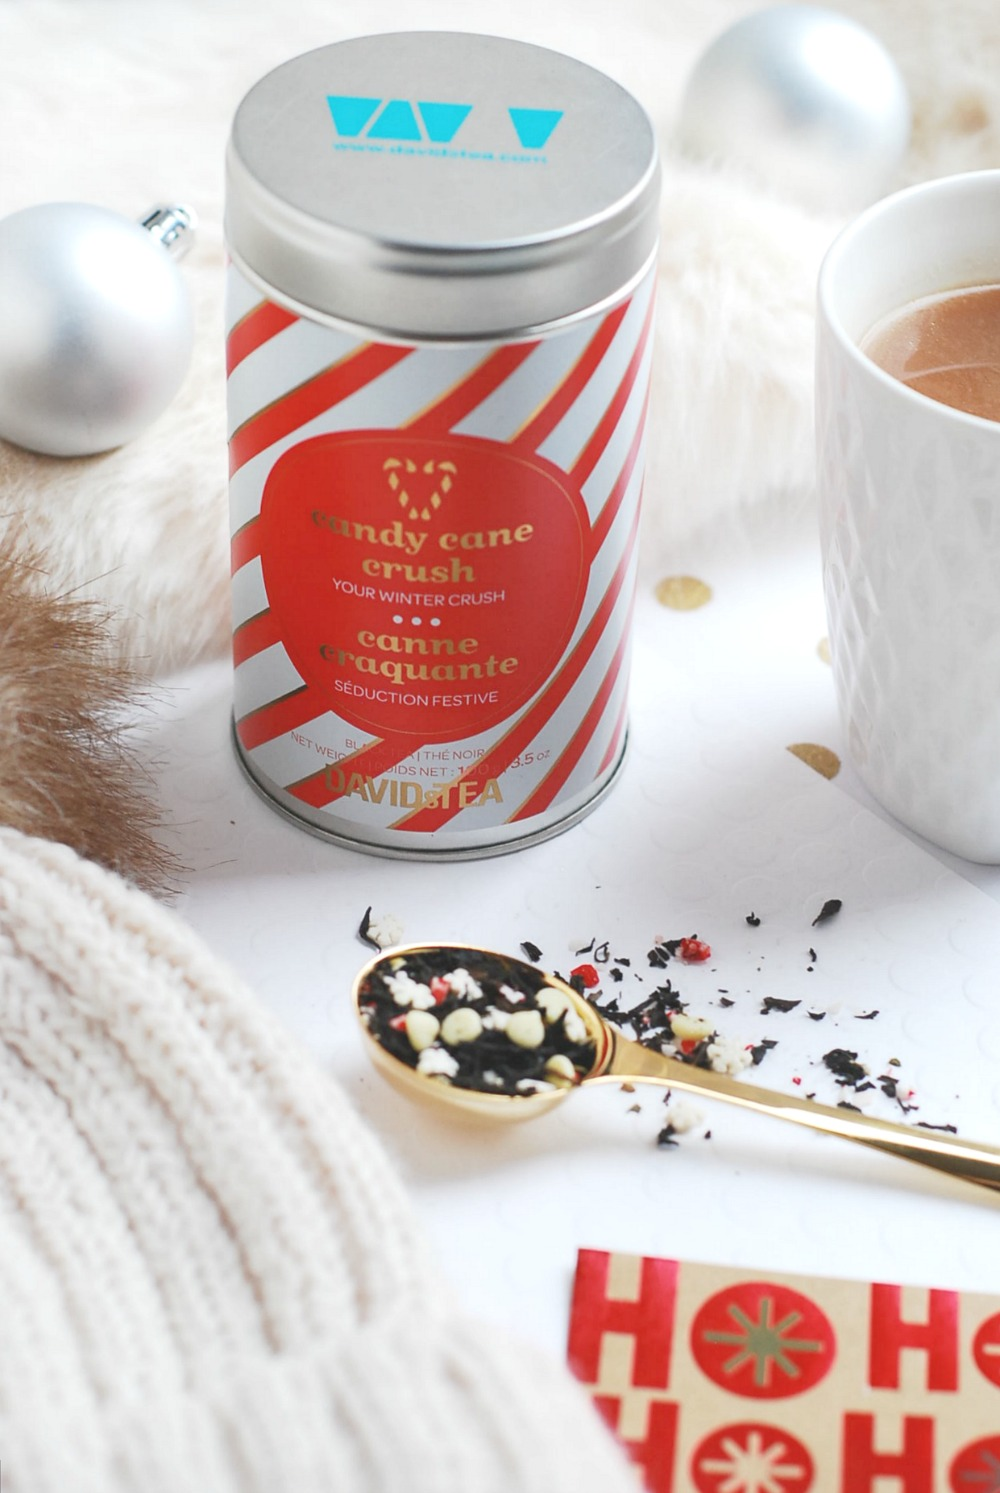 David's Tea Christmas 2016 collection gold perfect spoon